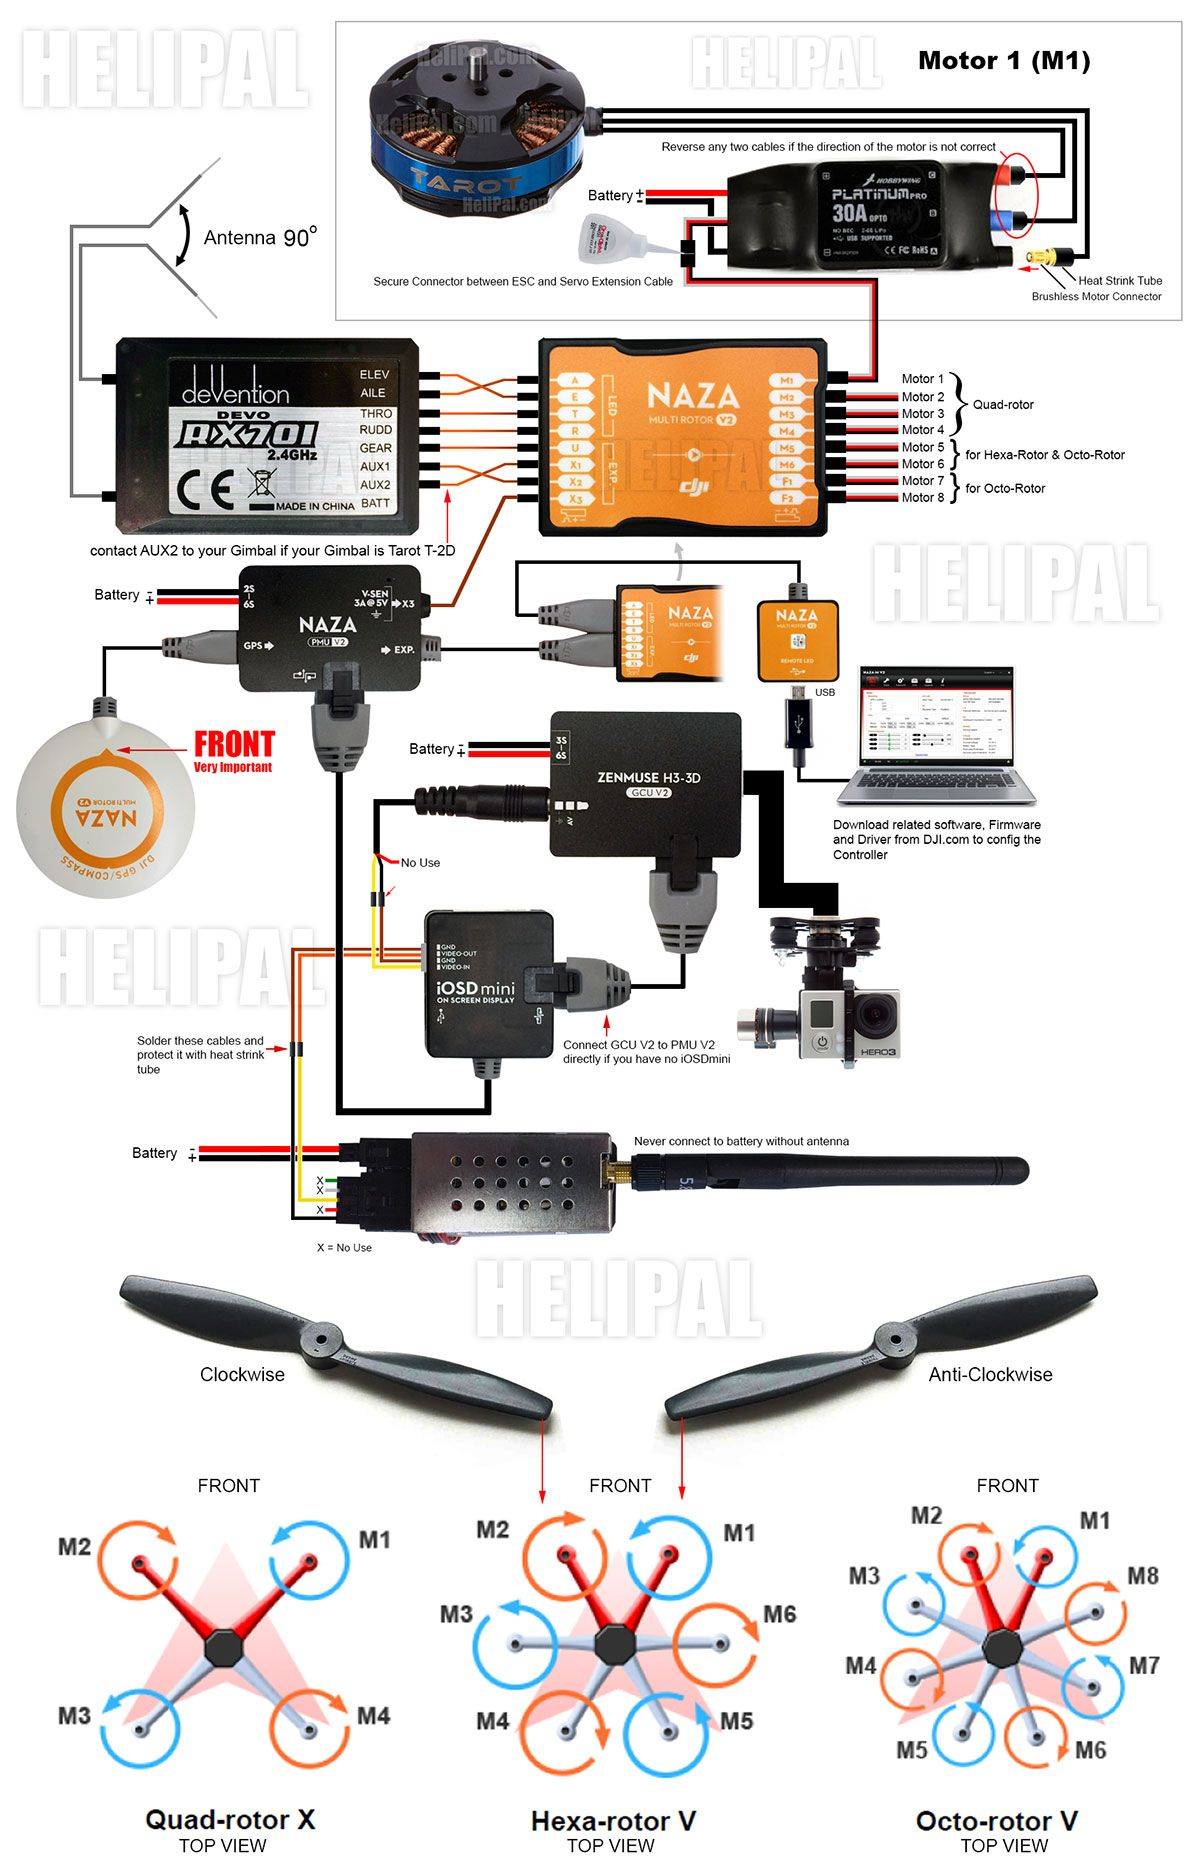 47e6d2b4d9f6fcd2266d3d10d9cddcee pack tarot hardware diagram 01 big jpg (1200�1869) quadcopter dji phantom 3 standard wiring diagram at soozxer.org